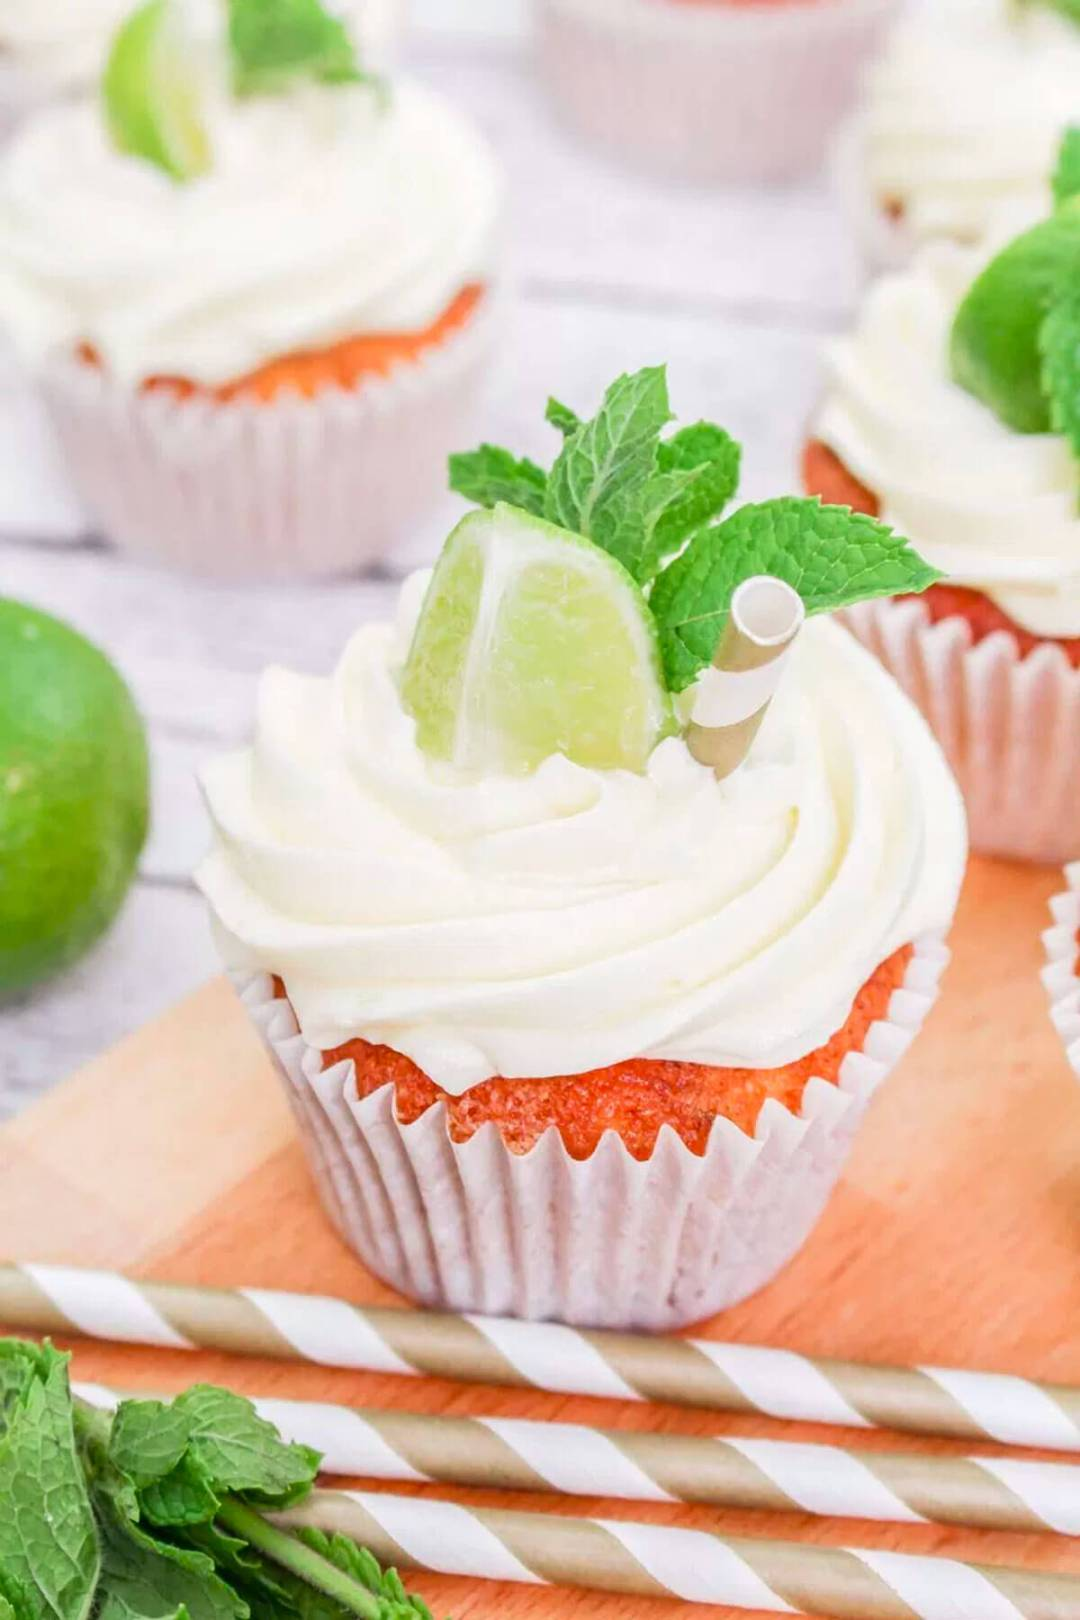 "Mojito Cupcakes 'title =' Mojito Cupcakes '/></div data-recalc-dims=""1""> </div> </div> <section class=""av_textblock_section ""> <div class="